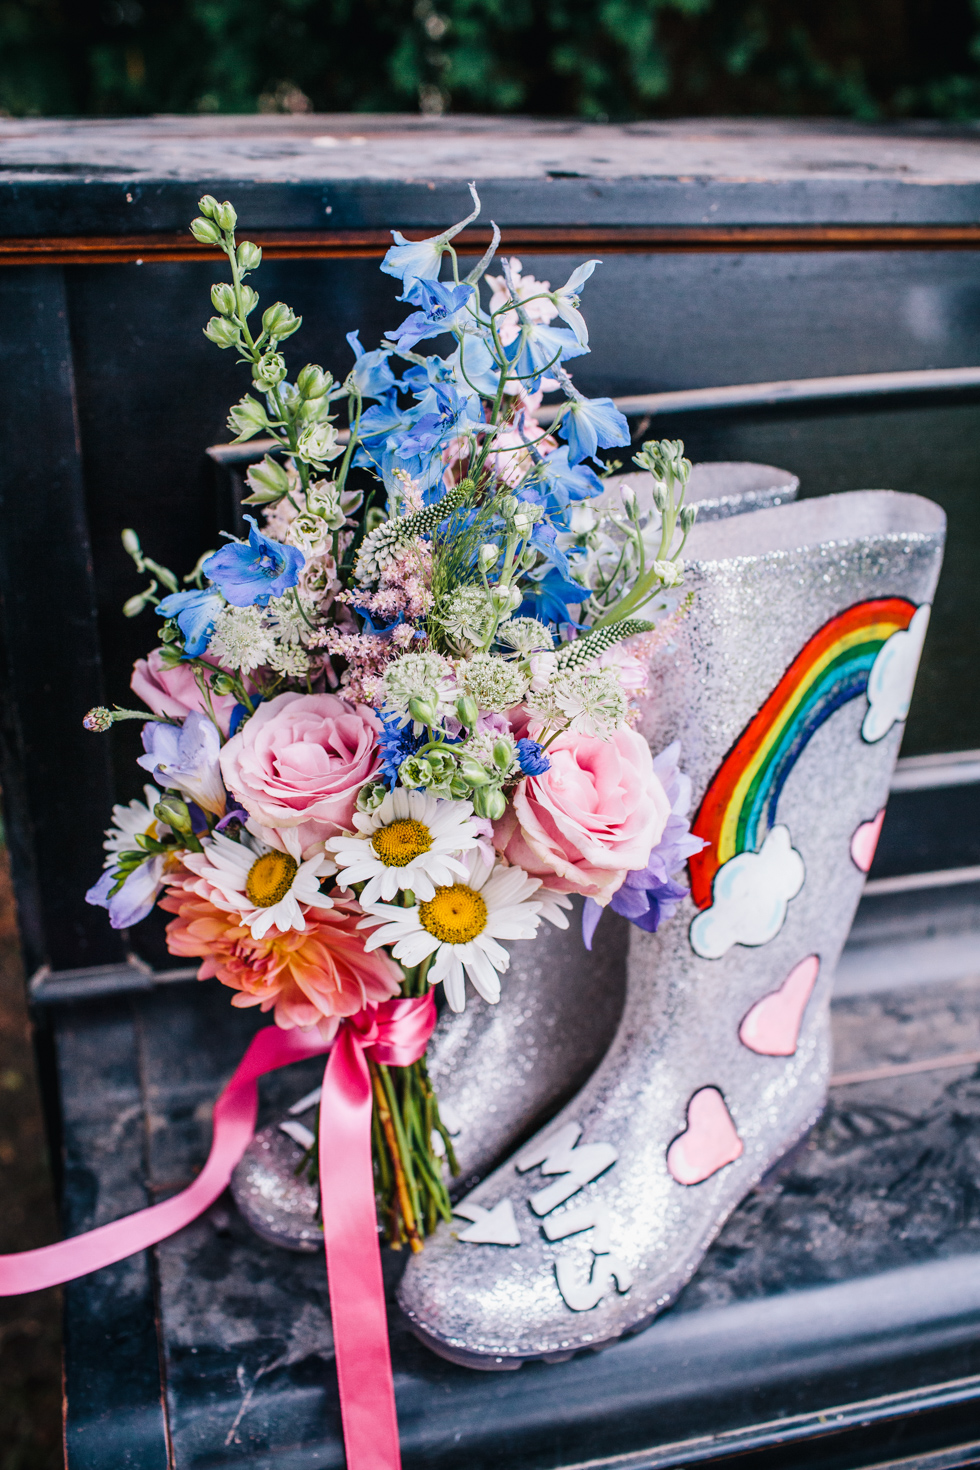 wedding wellington boots with a unicorn and rainbows drawn onto the side